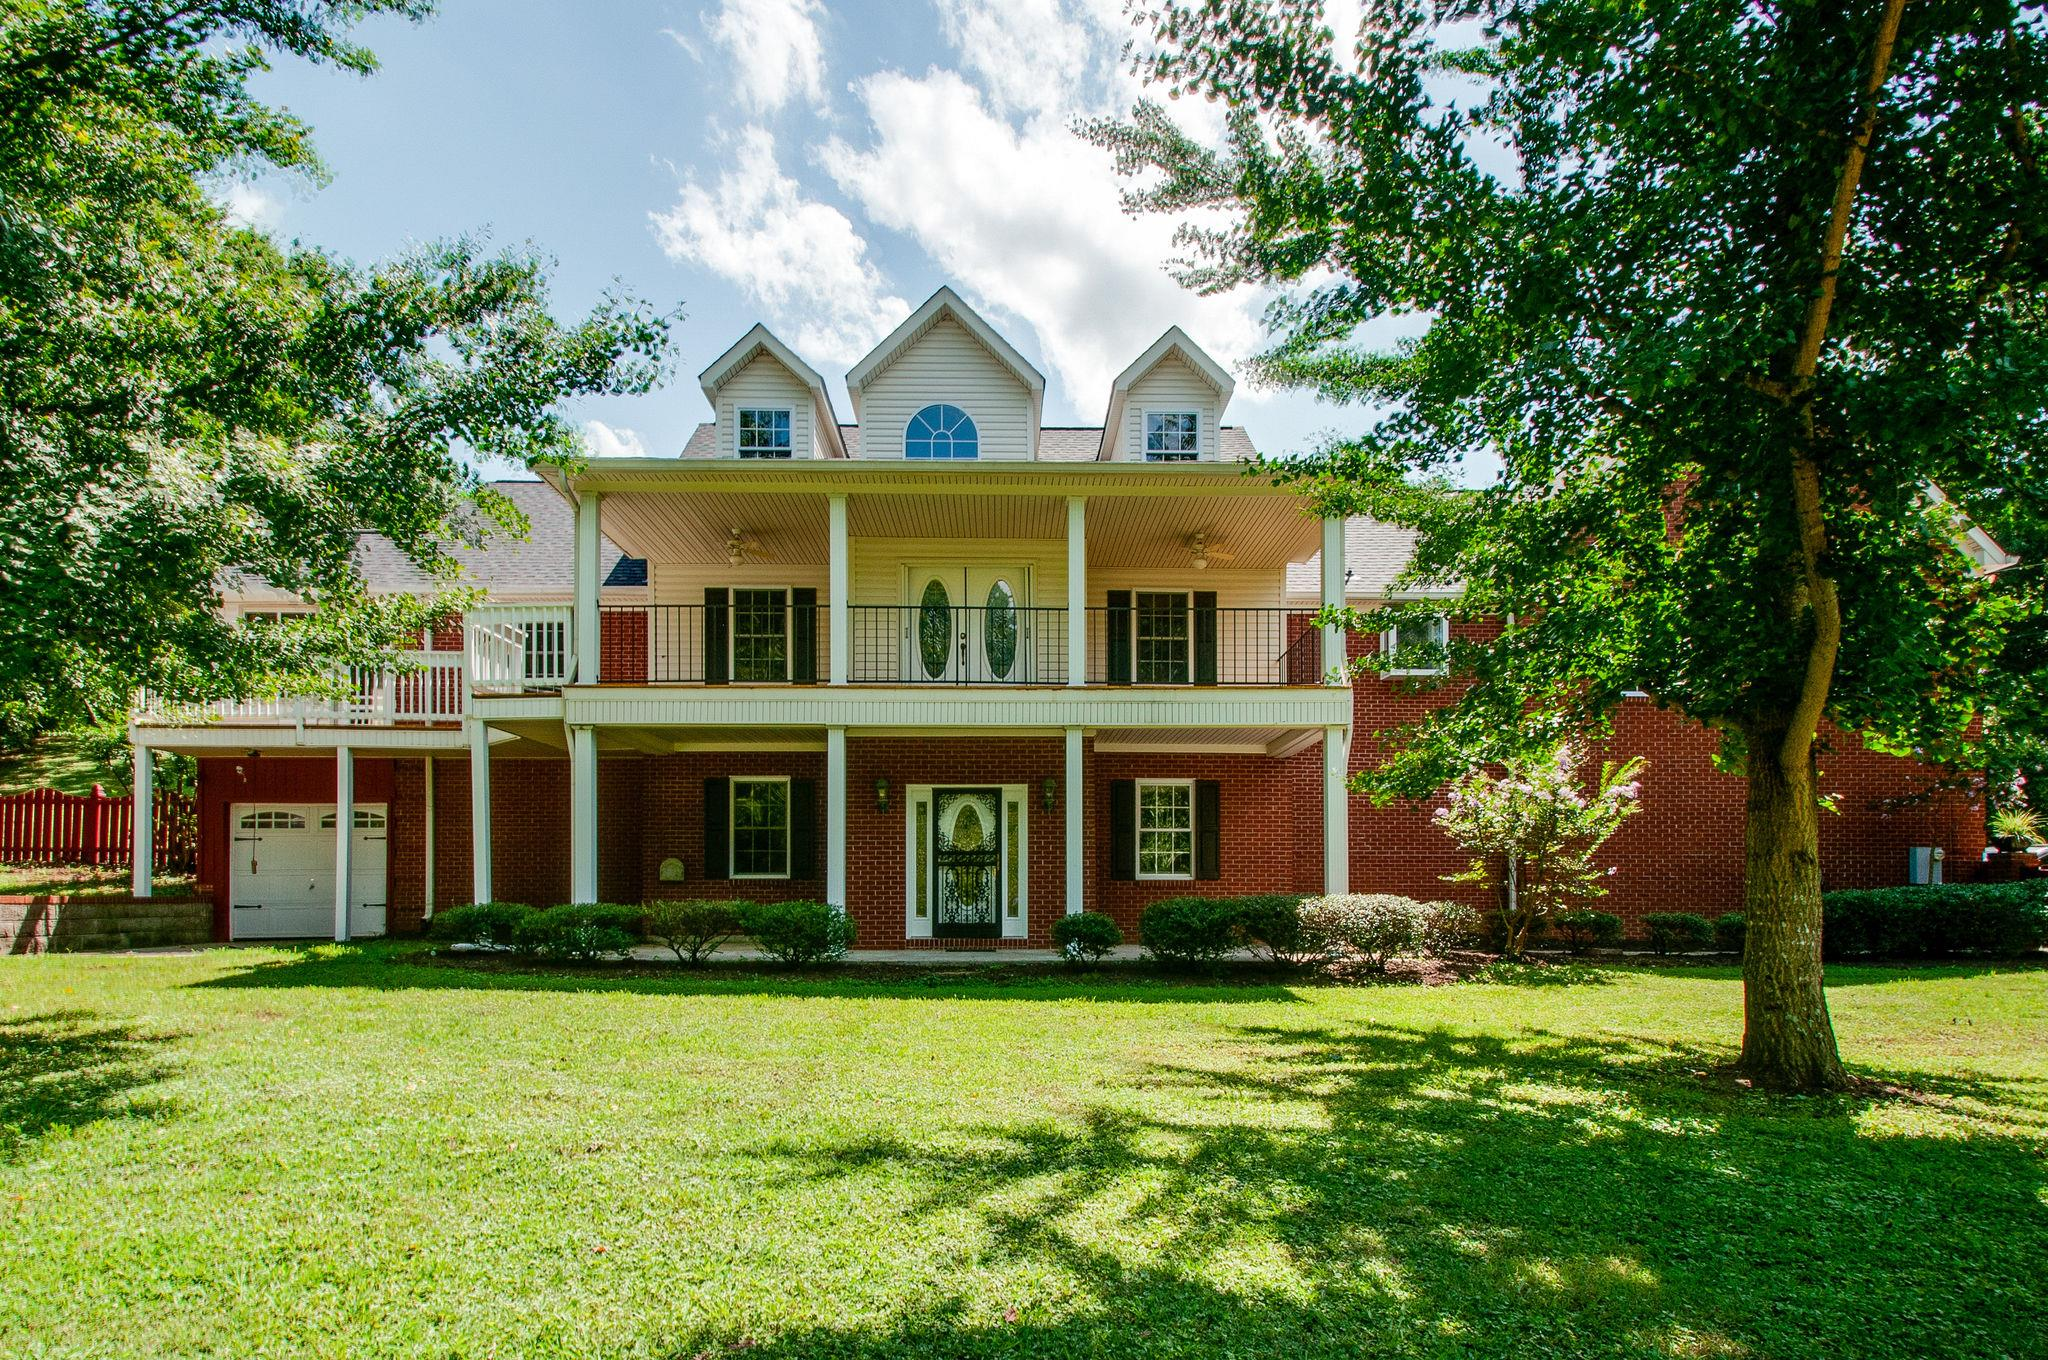 1406 Donelson Ave, Old Hickory, TN 37138 - Old Hickory, TN real estate listing